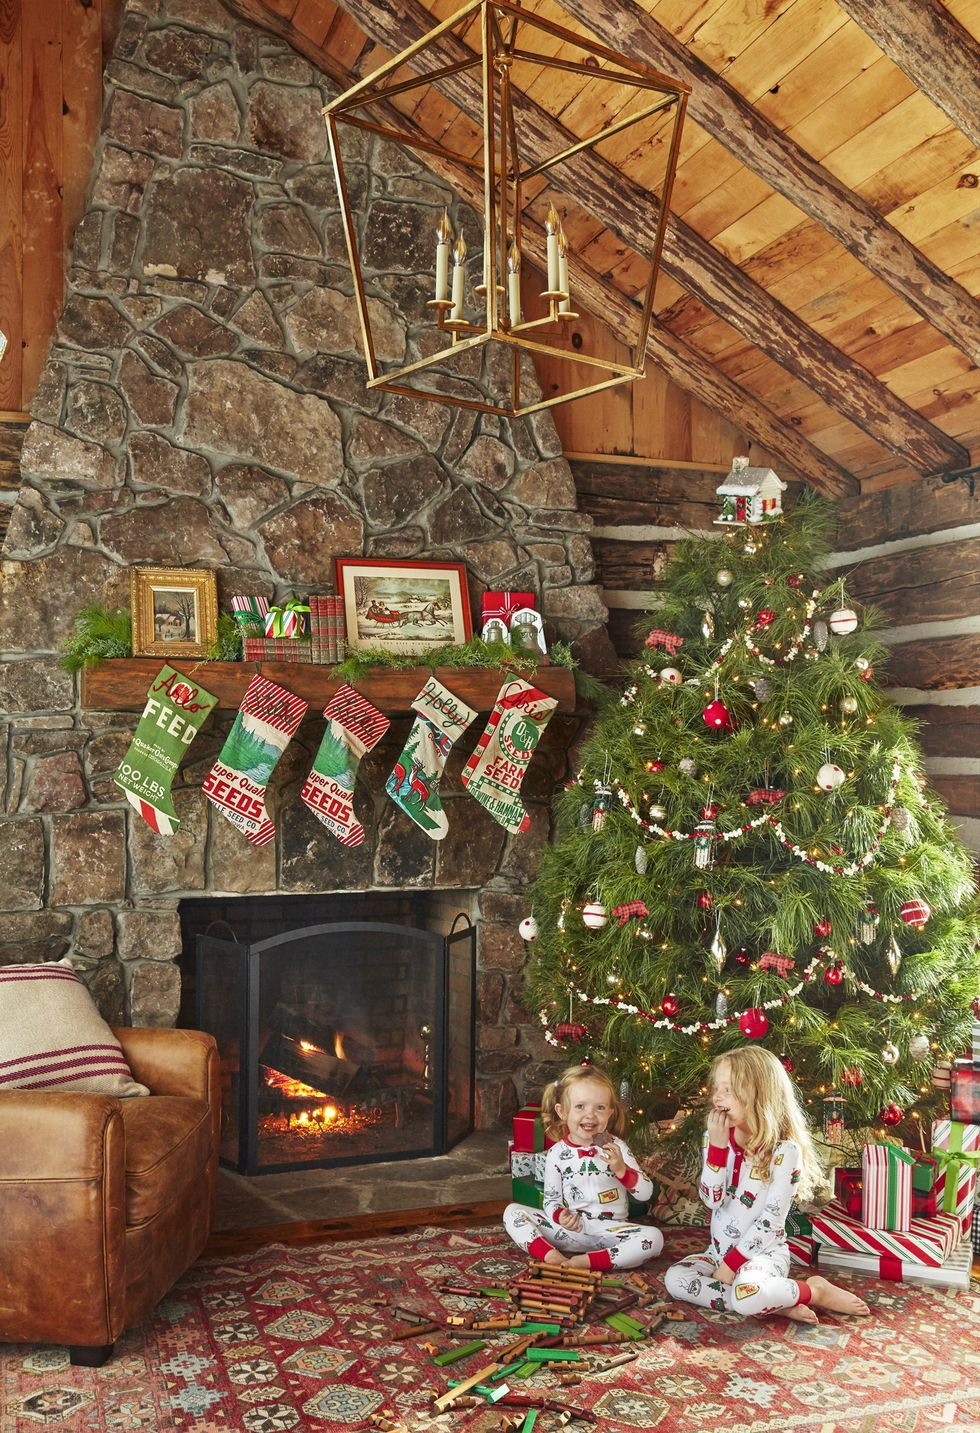 This Charming Tennessee Cabin Is The Epitome Of Rustic Christmas Decor Christmas Decorations Rustic Fun Christmas Decorations Christmas Mantel Decorations